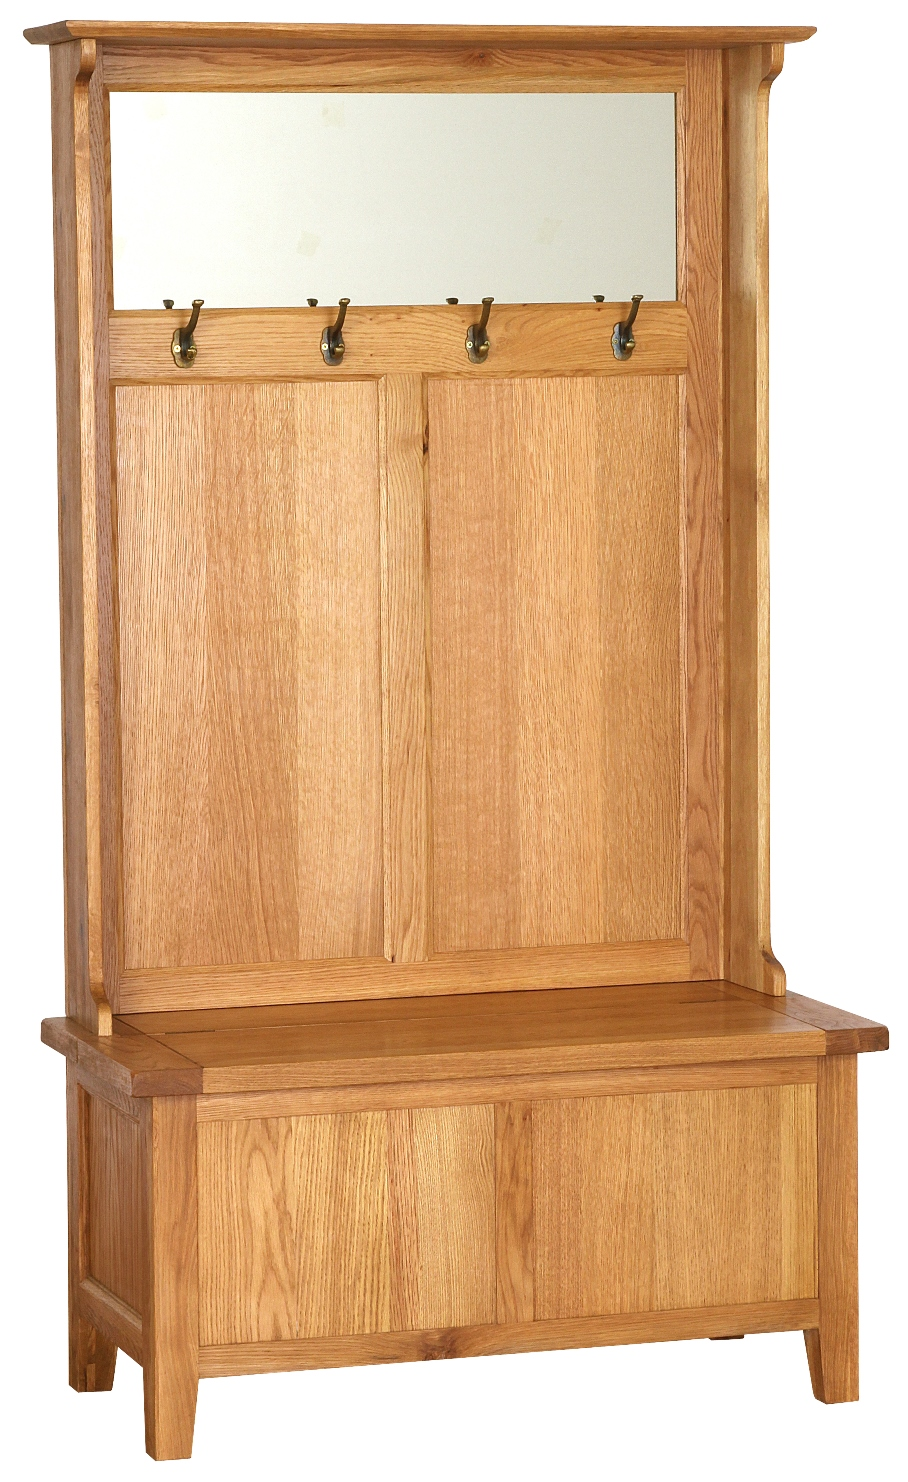 STORAGE UNIT WITH COAT RACKS AND MIRROR w 101 x d 45 x h 180 cm € 725 Product Code: NB075